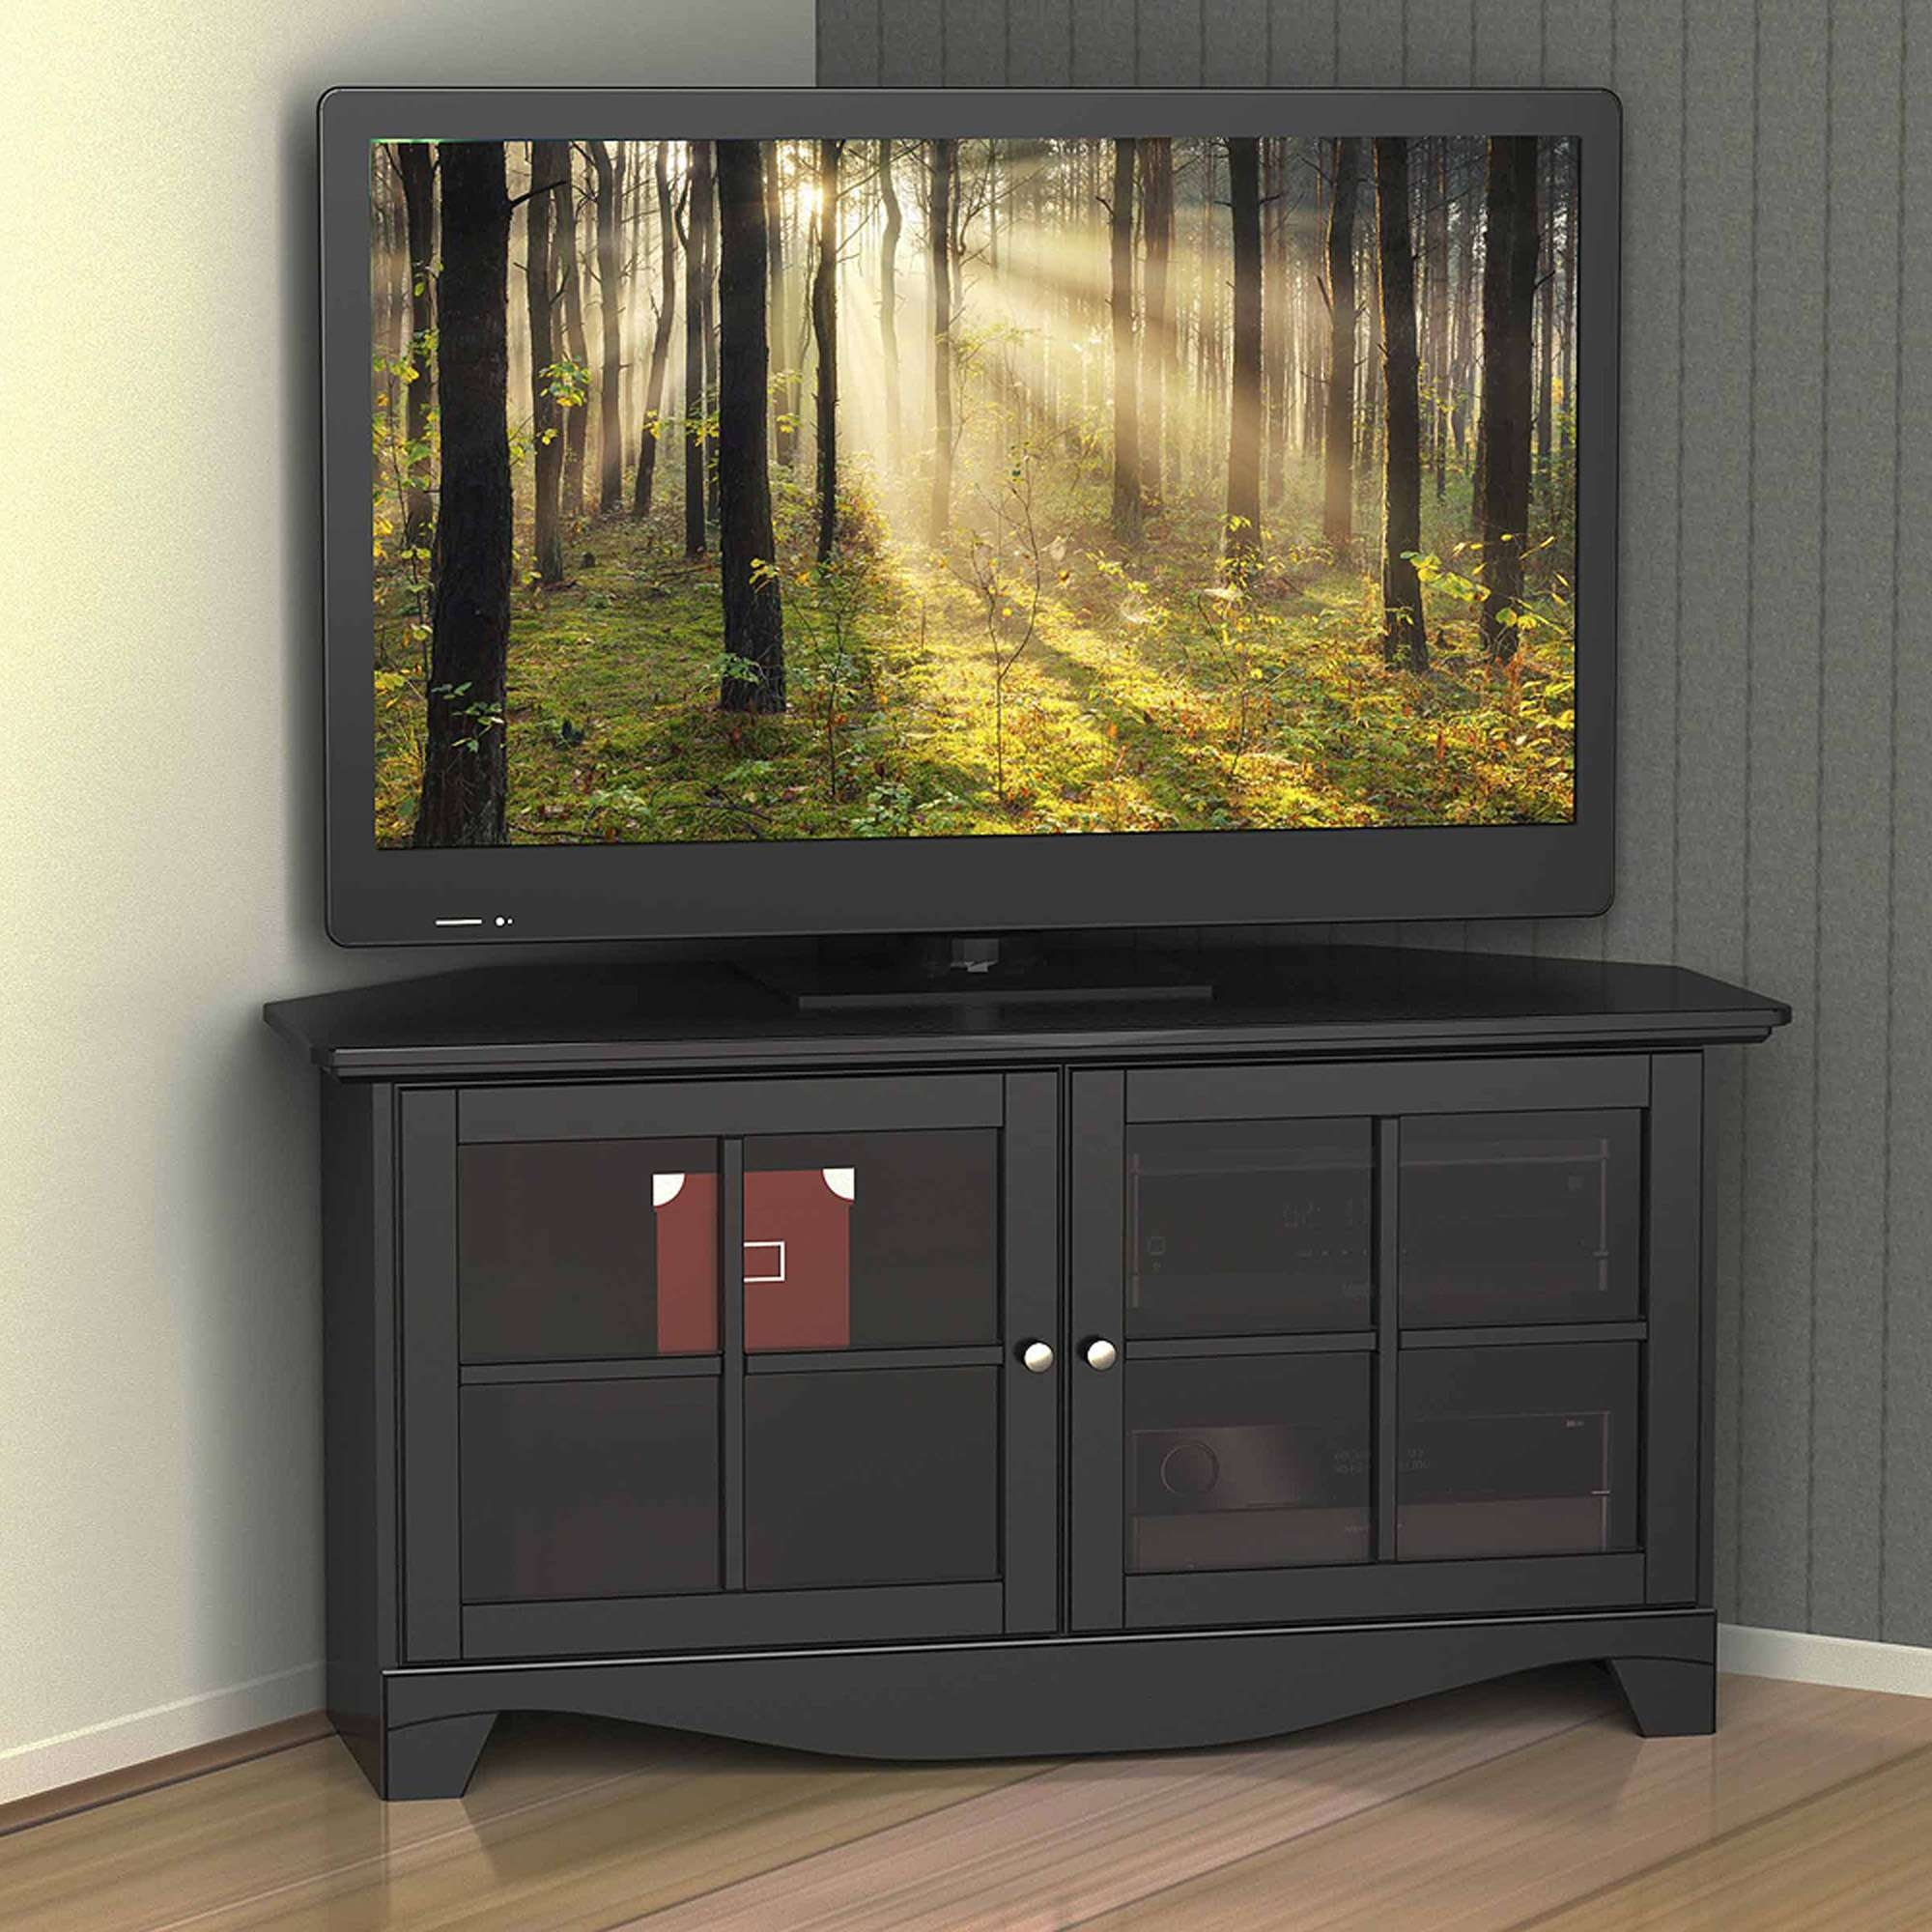 Nexera Pinnacle Black 2 Door Corner Tv Stand For Tvs Up To 49 Throughout Corner Tv Cabinets With Hutch (View 18 of 20)